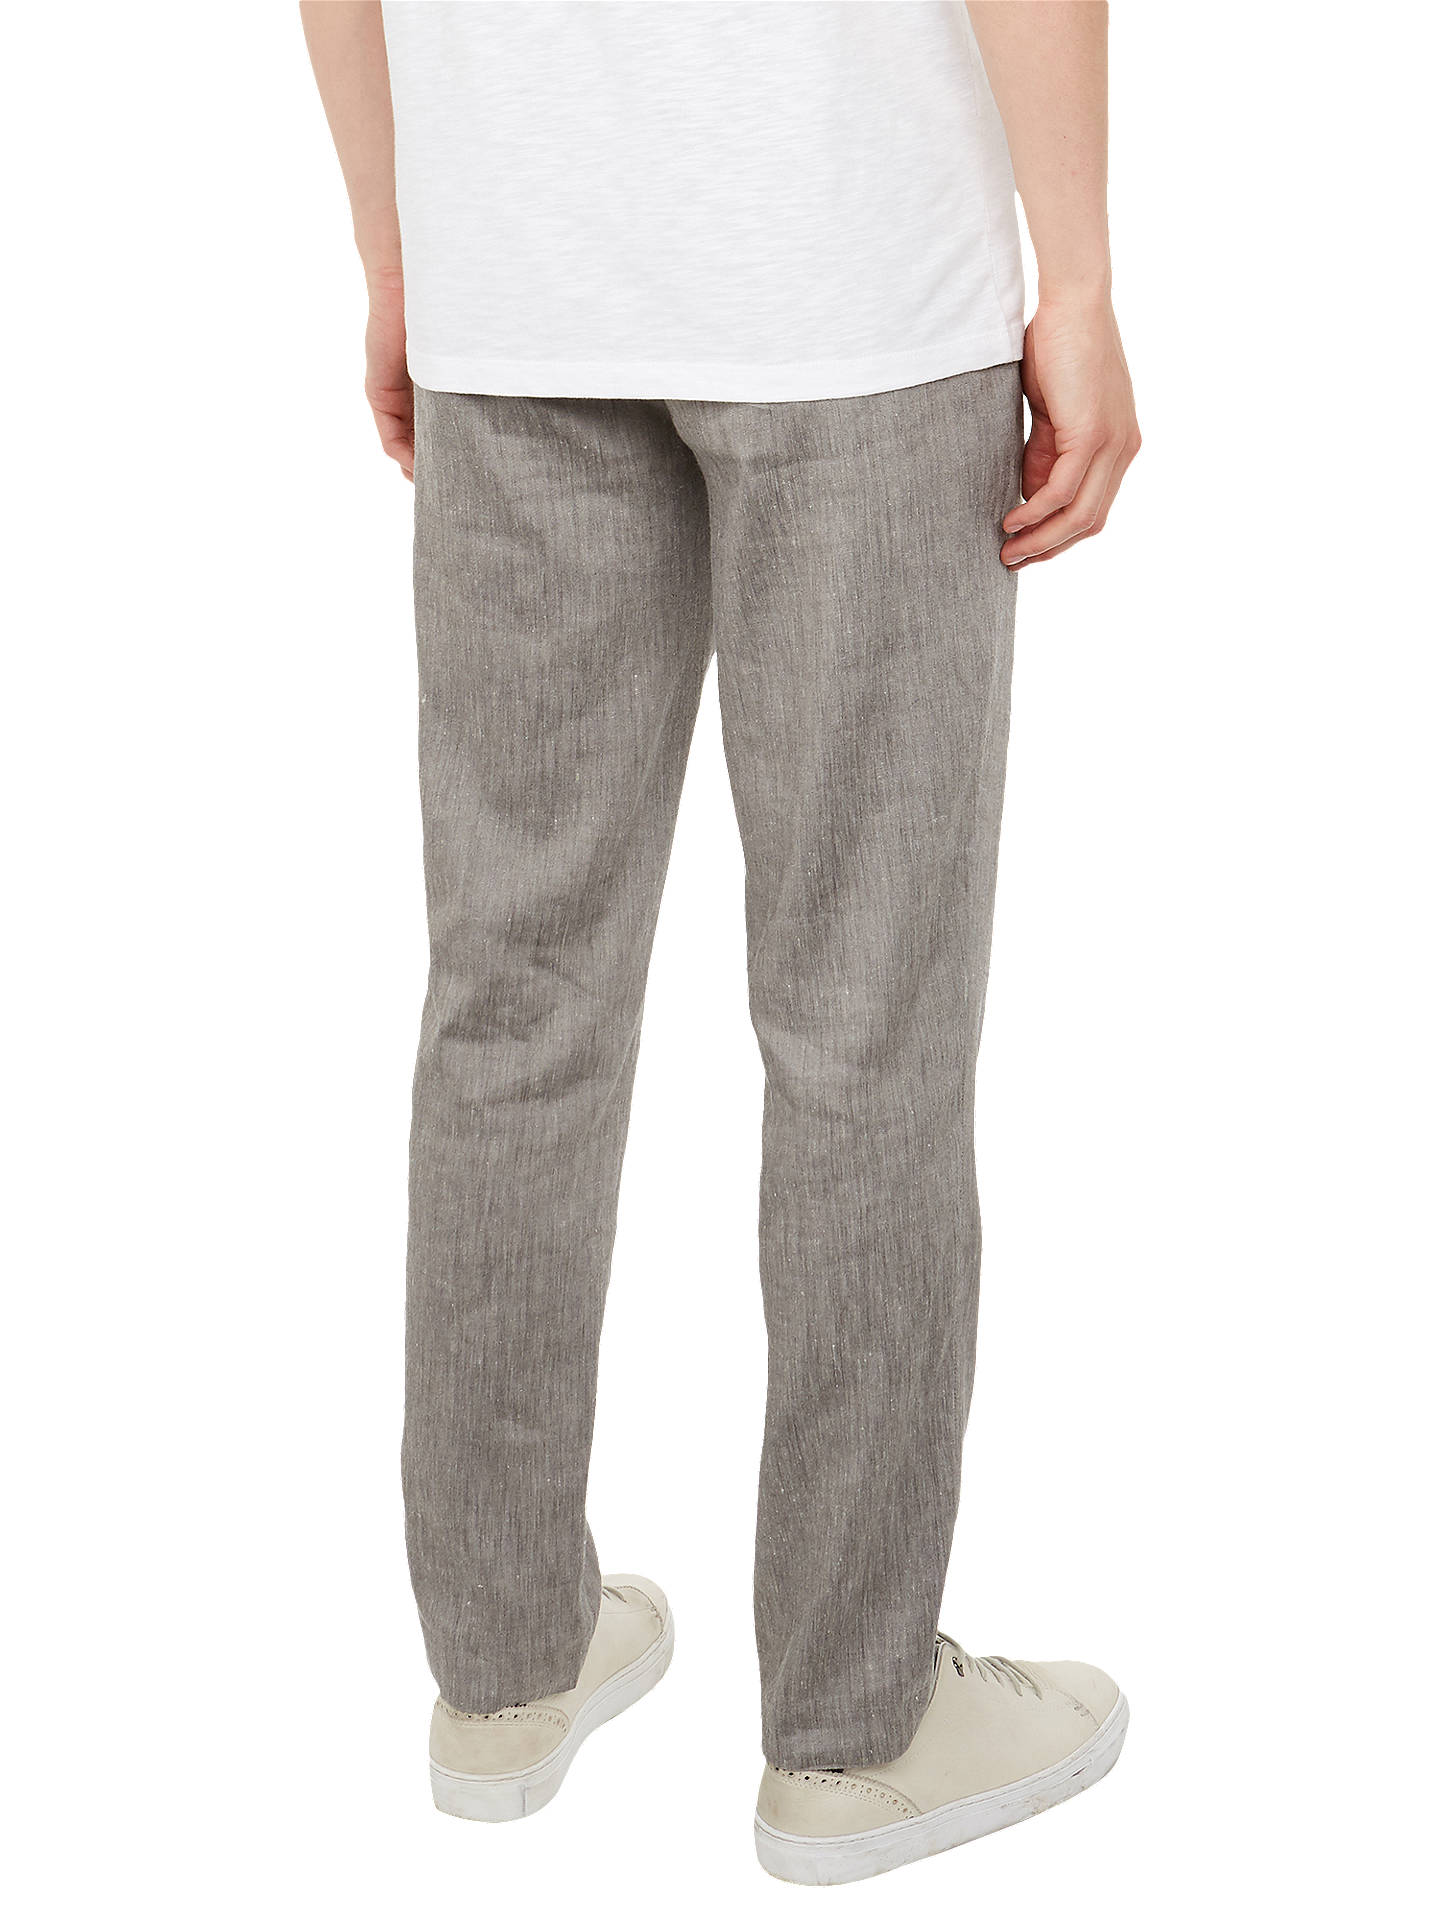 BuyTed Baker Bluetro Linen Blend Trousers, Natural, 32R Online at johnlewis.com